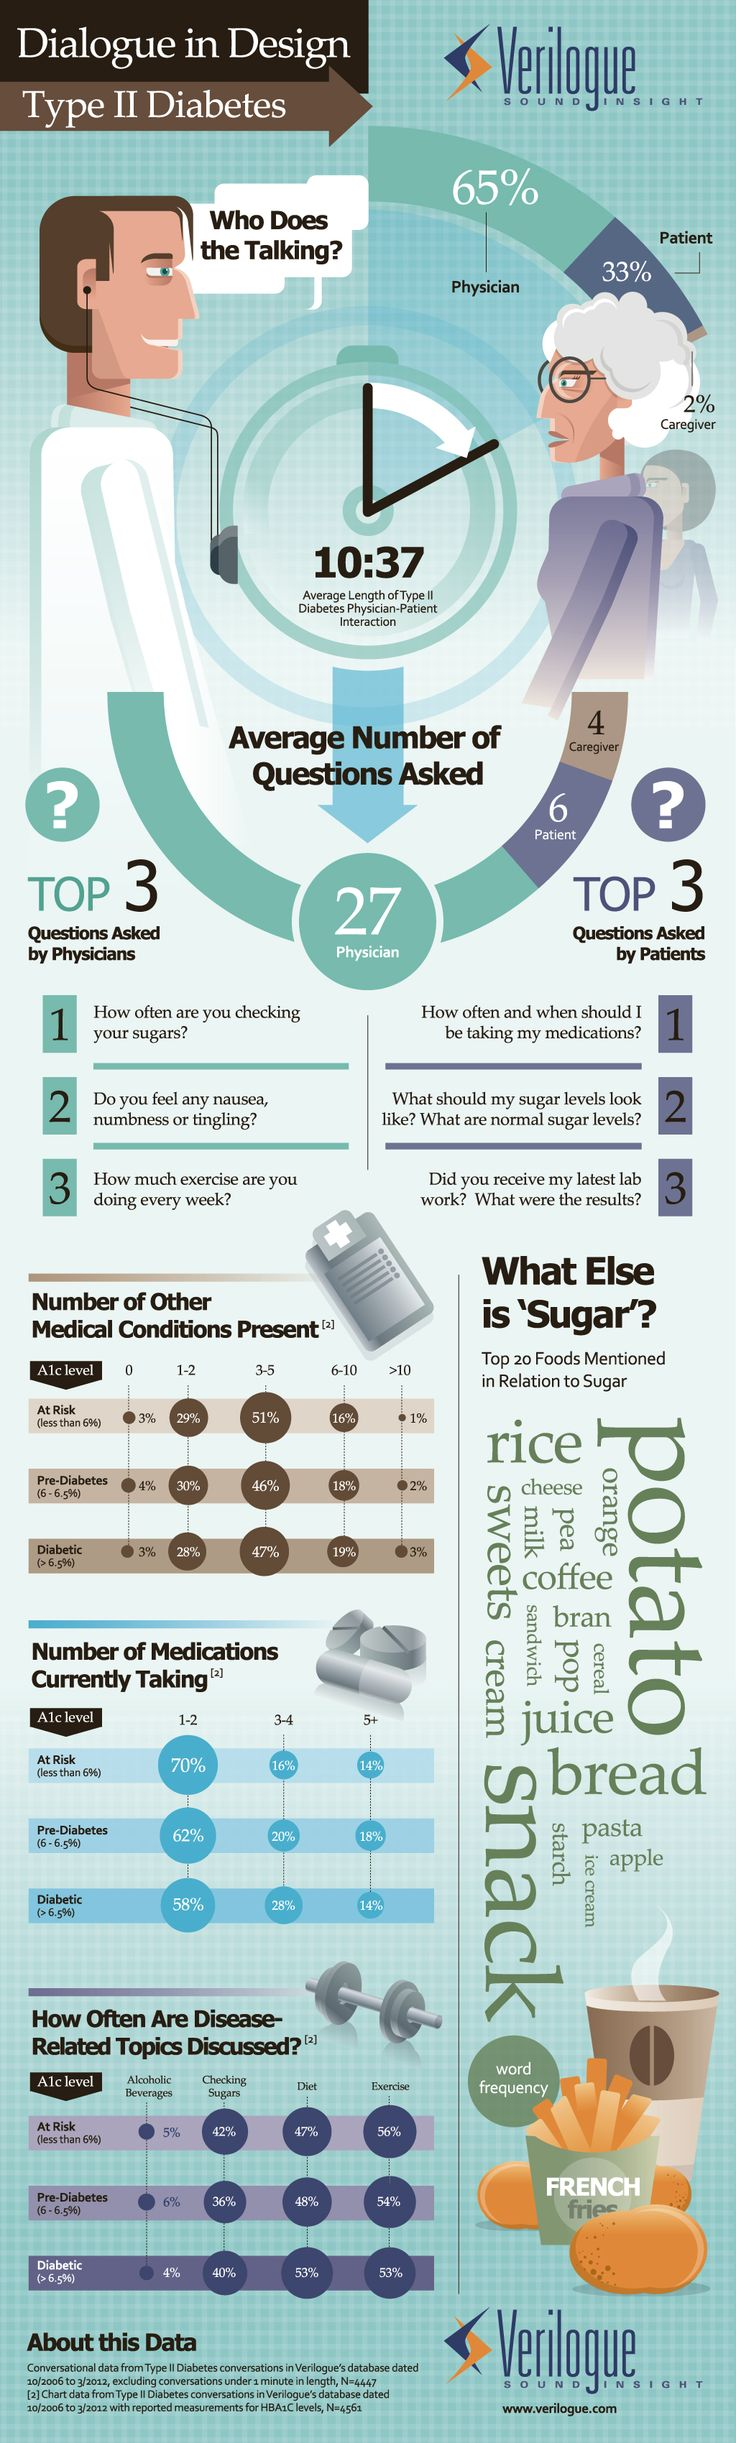 90 best diabetes quotes and inspirational images on pinterest in this dialogue in design infographic verilogue draws insightful conversational insights from their collection of exam room interactions in type ii fandeluxe Gallery